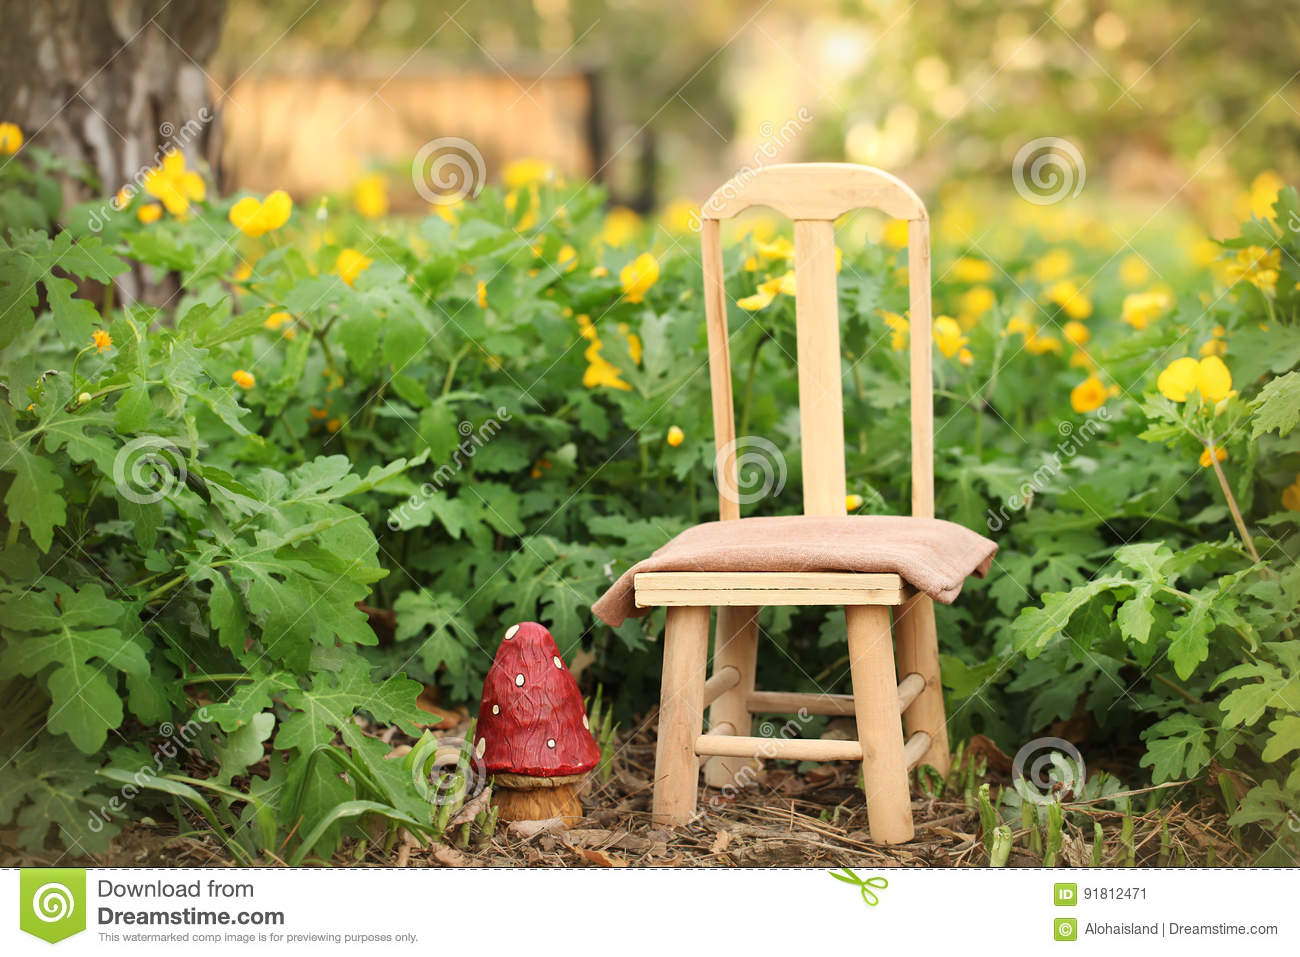 Digital background of outdoor spring garden scene and small wooden chair for use with newborn baby or child photography